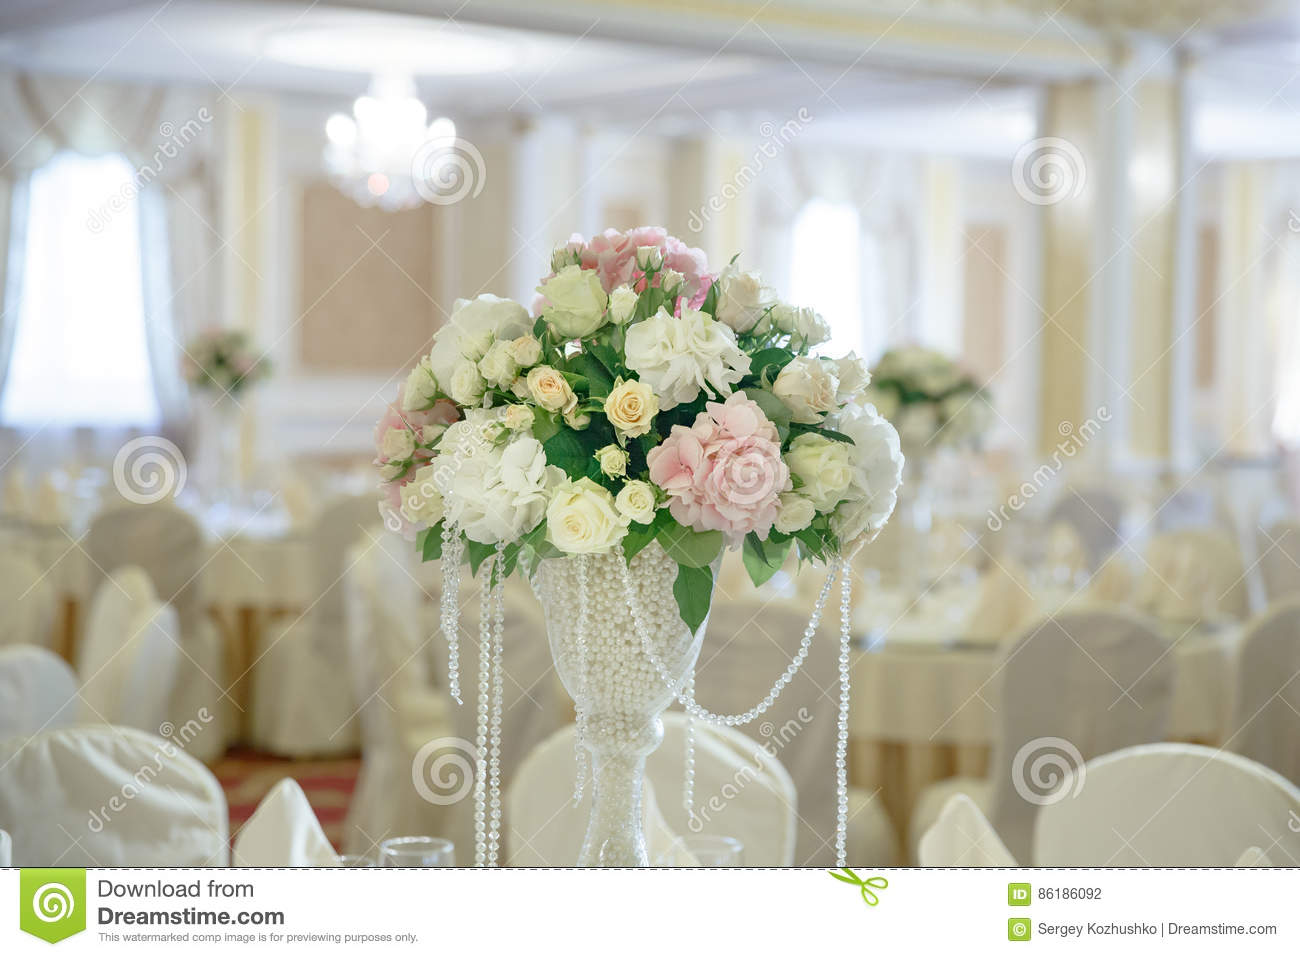 Roses peony flower arrangement white gold color decoration stock download comp mightylinksfo